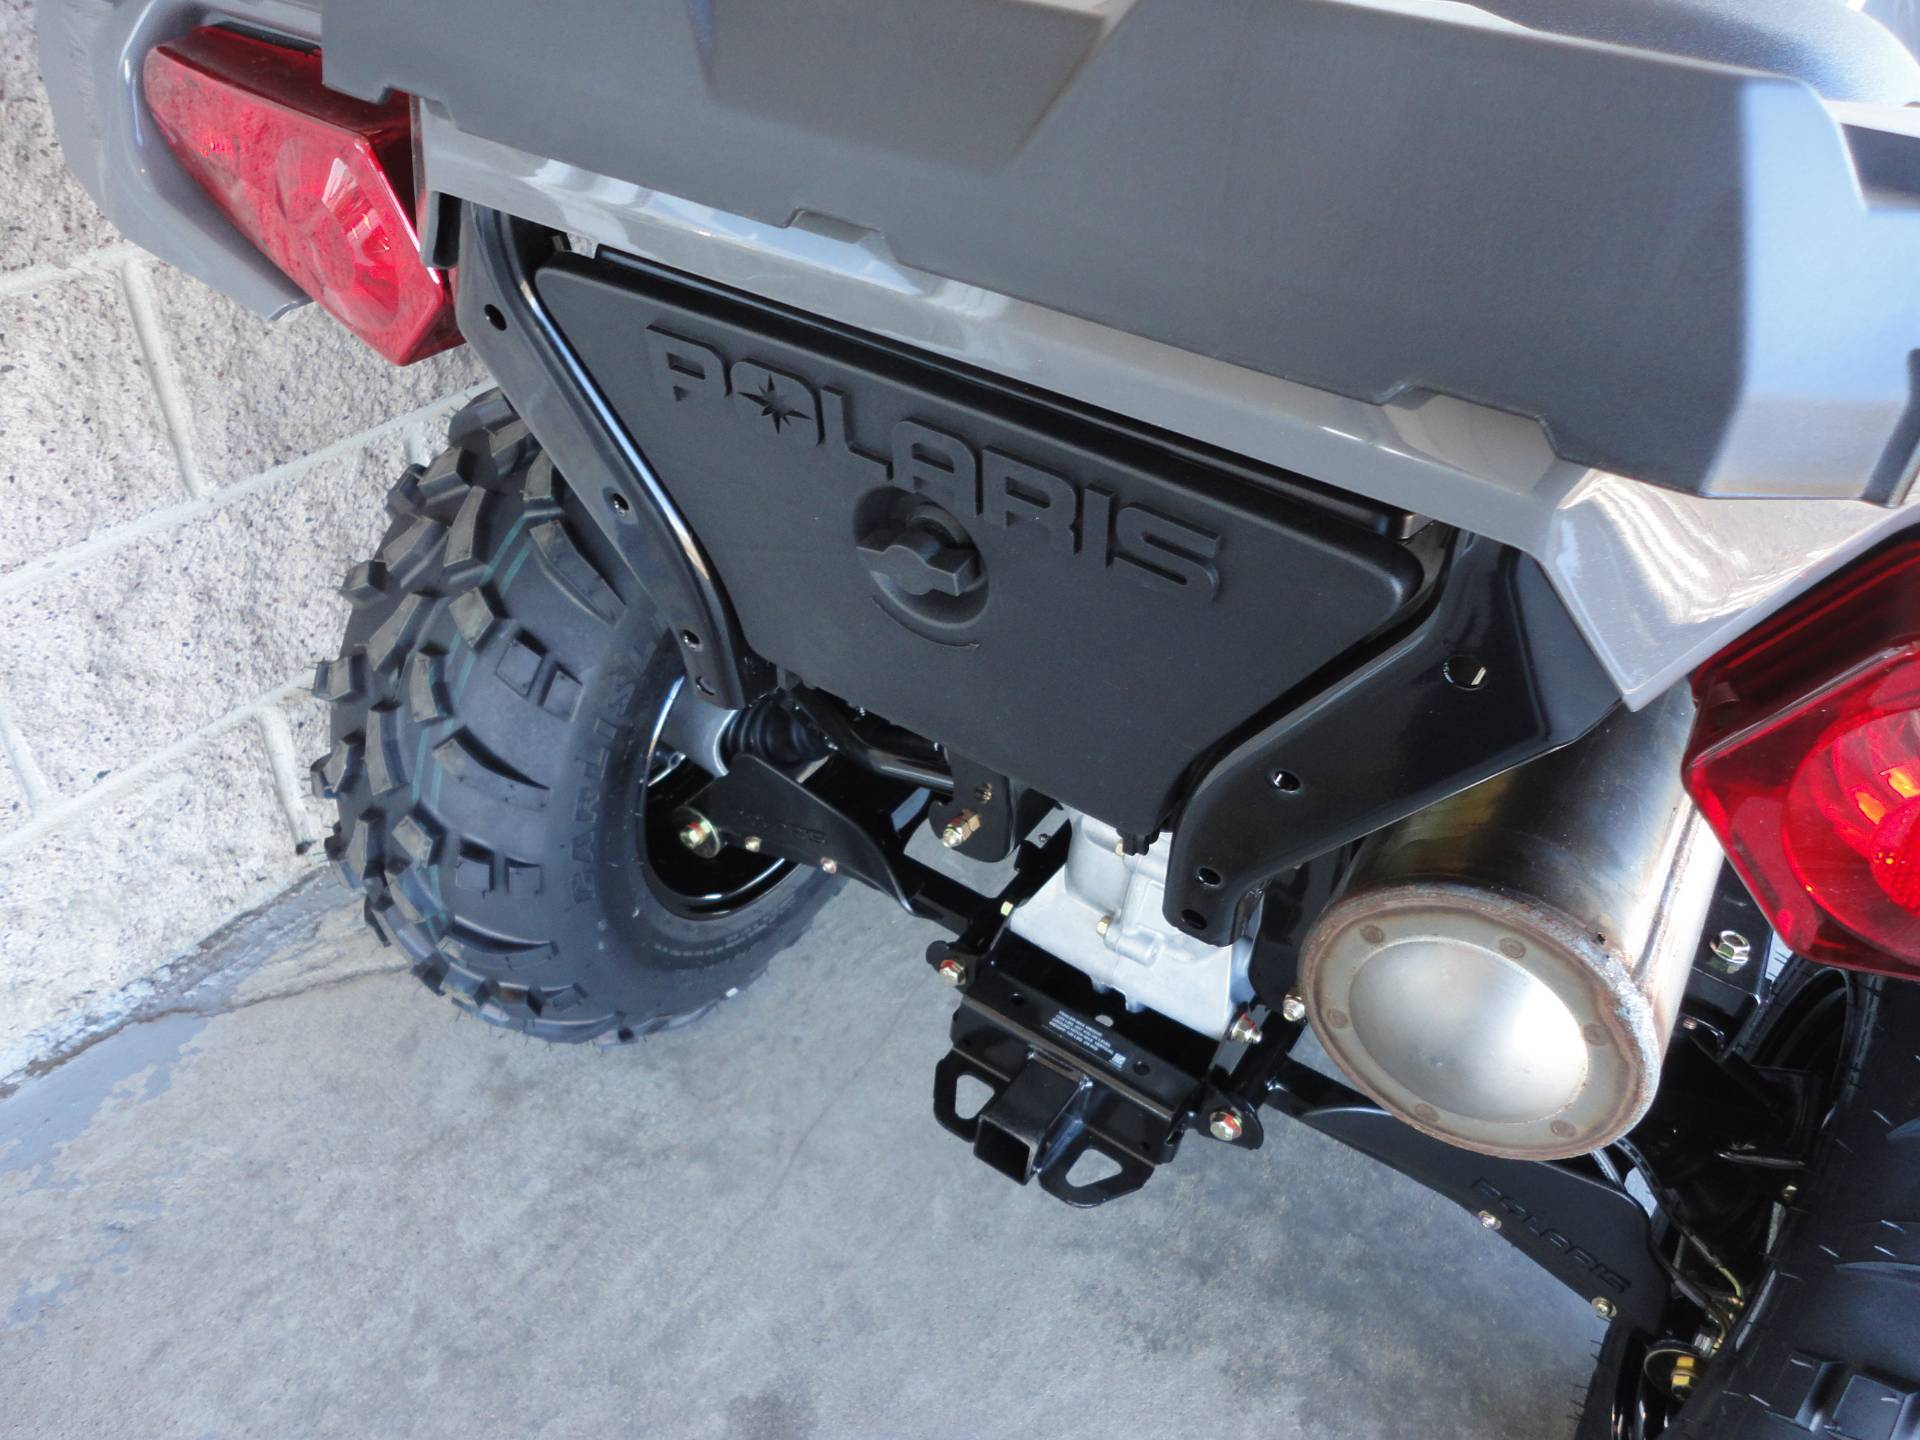 2020 Polaris Sportsman 570 in Denver, Colorado - Photo 19